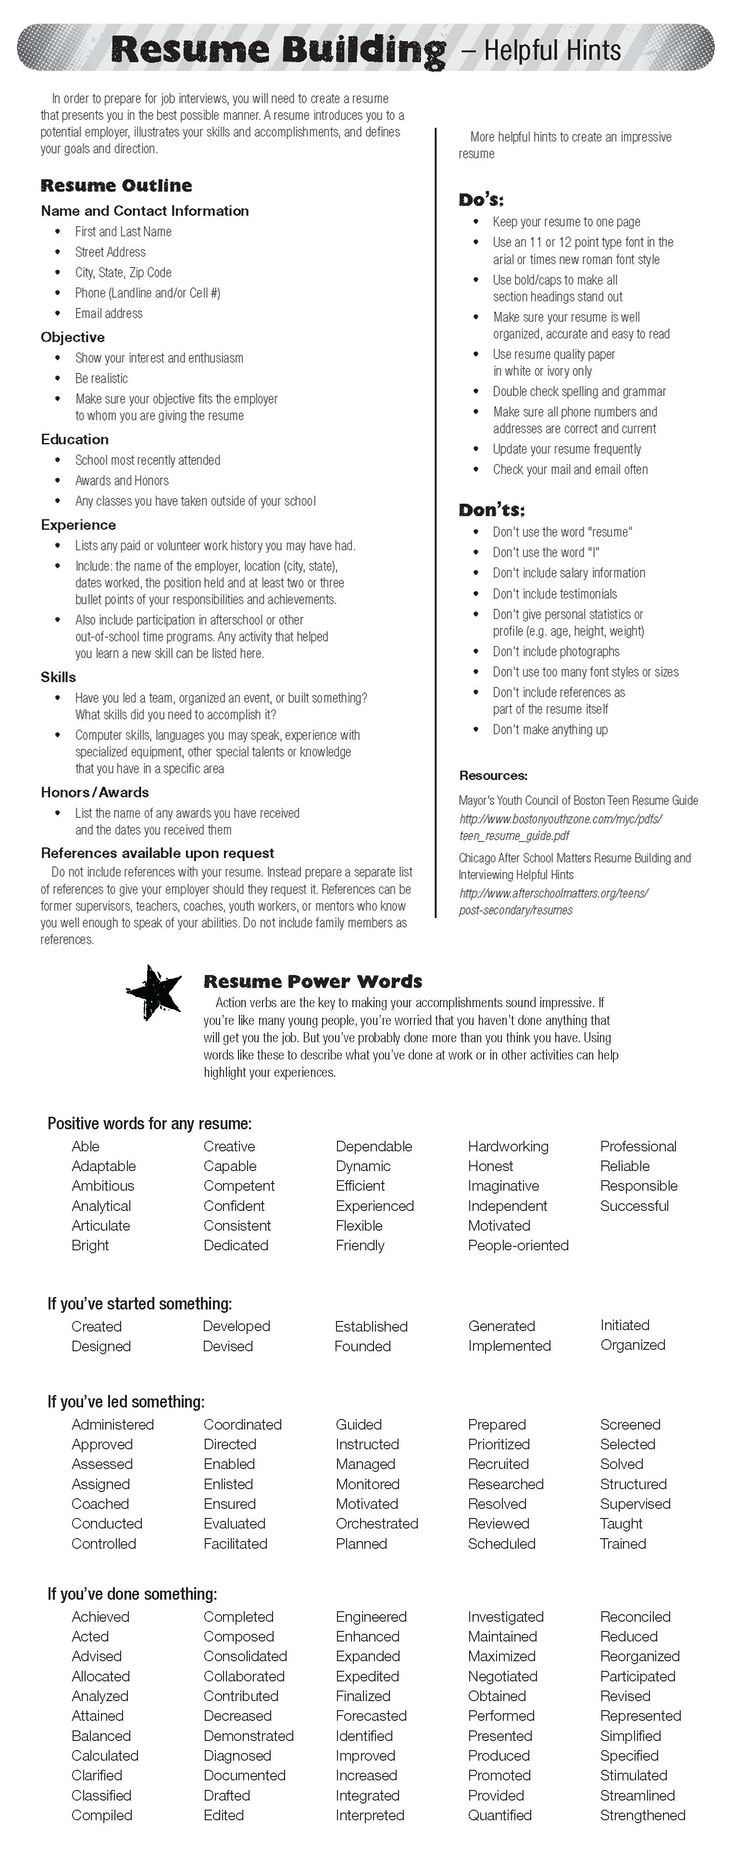 Opposenewapstandardsus  Gorgeous  Ideas About Resume On Pinterest  Cv Format Resume Cv And  With Hot  Ideas About Resume On Pinterest  Cv Format Resume Cv And Resume Templates With Beauteous Free Cover Letter For Resume Also Day Care Teacher Resume In Addition Lvn Resume Sample And How To Properly Write A Resume As Well As Security Manager Resume Additionally Respiratory Therapy Resume From Pinterestcom With Opposenewapstandardsus  Hot  Ideas About Resume On Pinterest  Cv Format Resume Cv And  With Beauteous  Ideas About Resume On Pinterest  Cv Format Resume Cv And Resume Templates And Gorgeous Free Cover Letter For Resume Also Day Care Teacher Resume In Addition Lvn Resume Sample From Pinterestcom